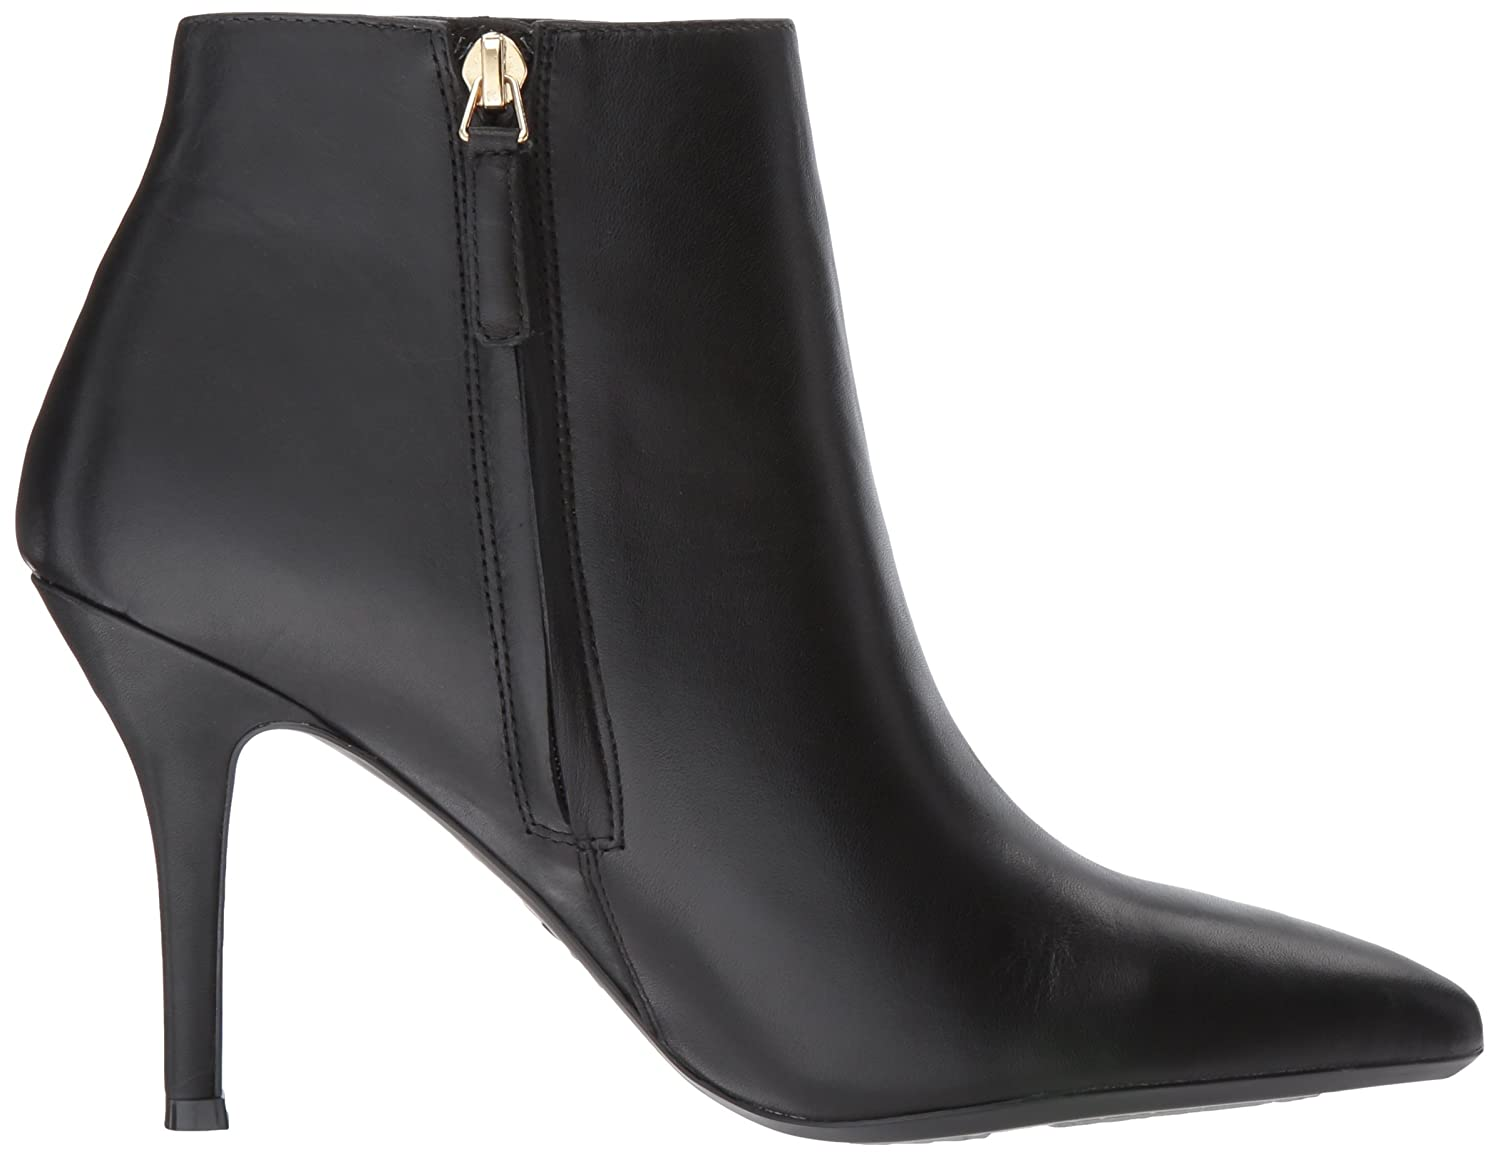 Nine West Women's Front9x9 B01MSU7CE9 10.5 B(M) US|Black/Black Leather